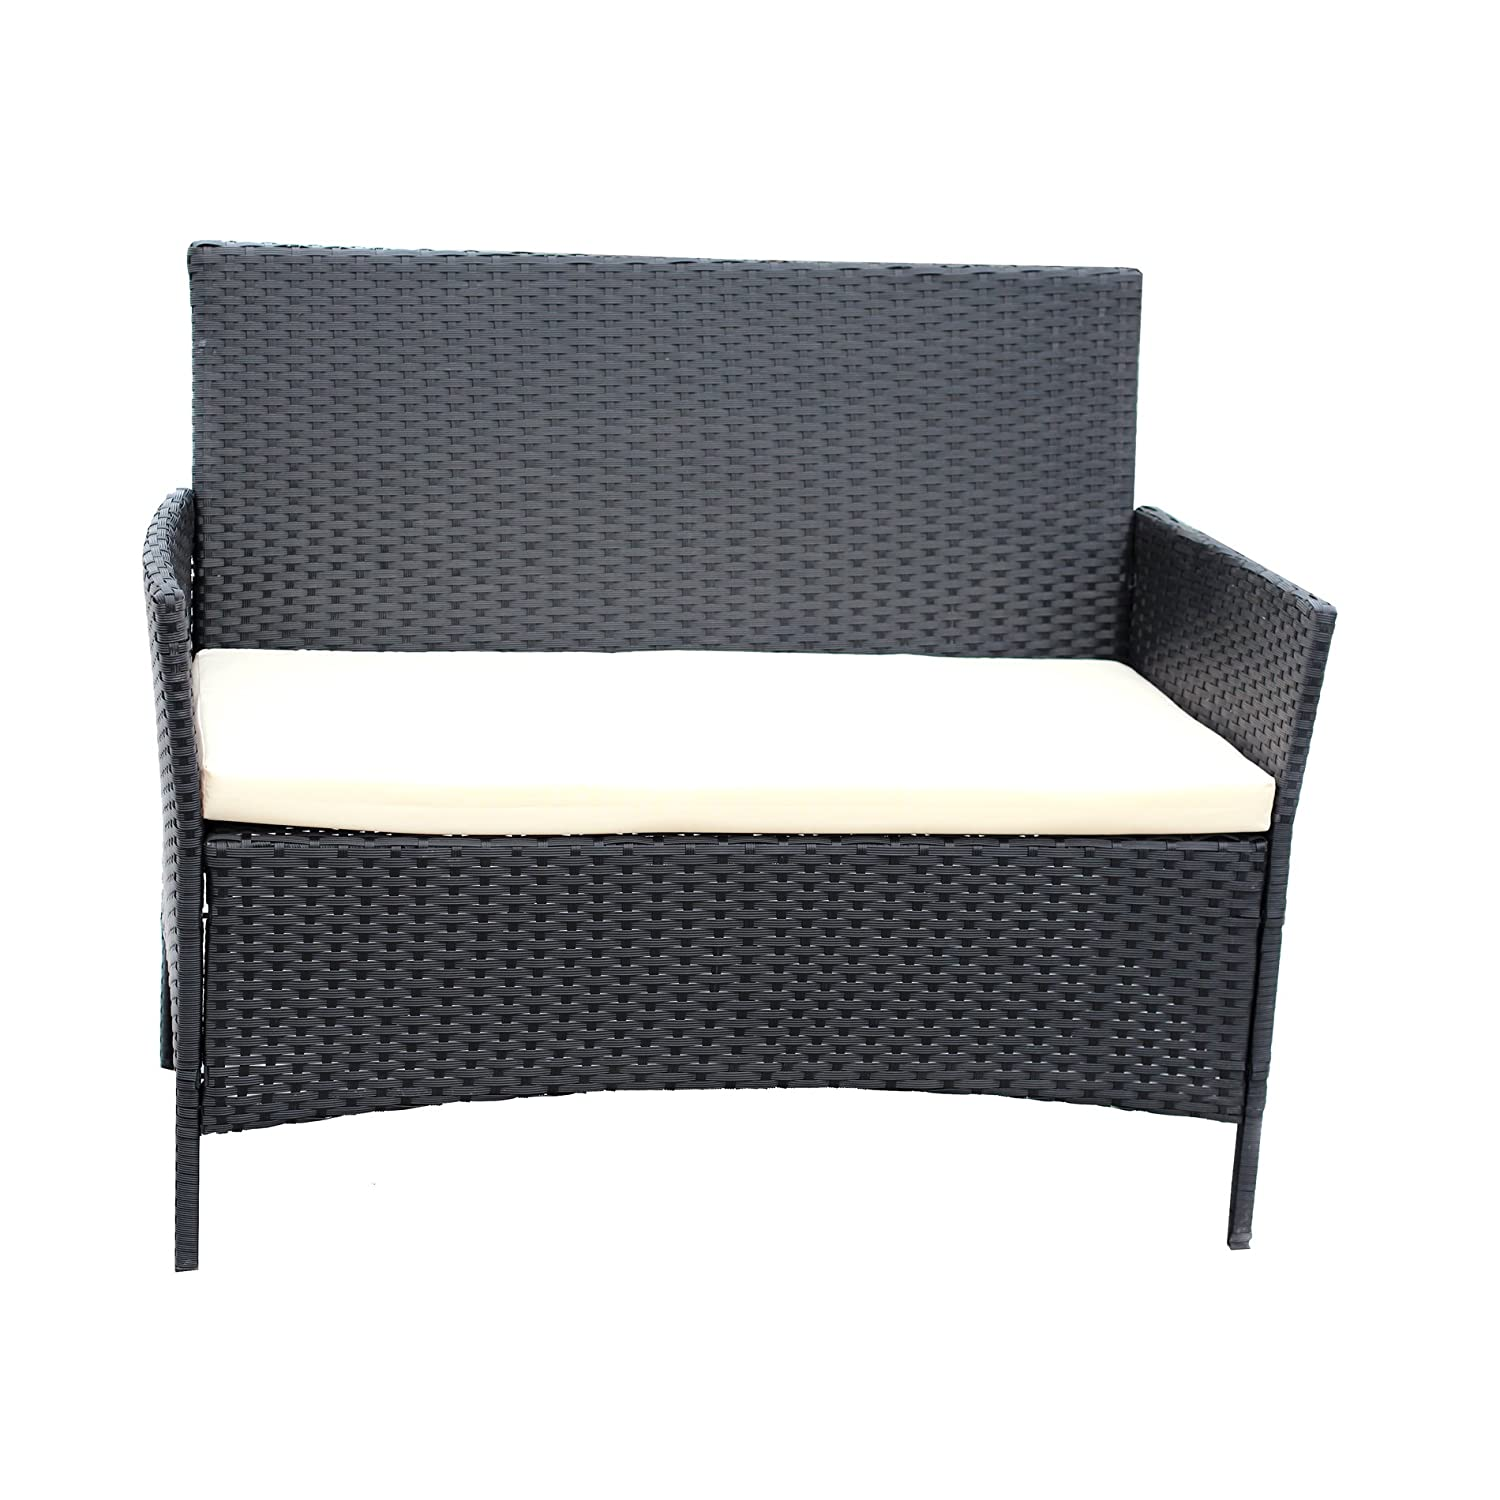 Superior Rattan Table And Chair Set Part - 8: Amazon.com : Patio Furniture Set Clearance Rattan Wicker Dining Table Chair  Indoor Outdoor Furniture Set Balcony Sofa Bench (Black) : Patio, Lawn U0026  Garden